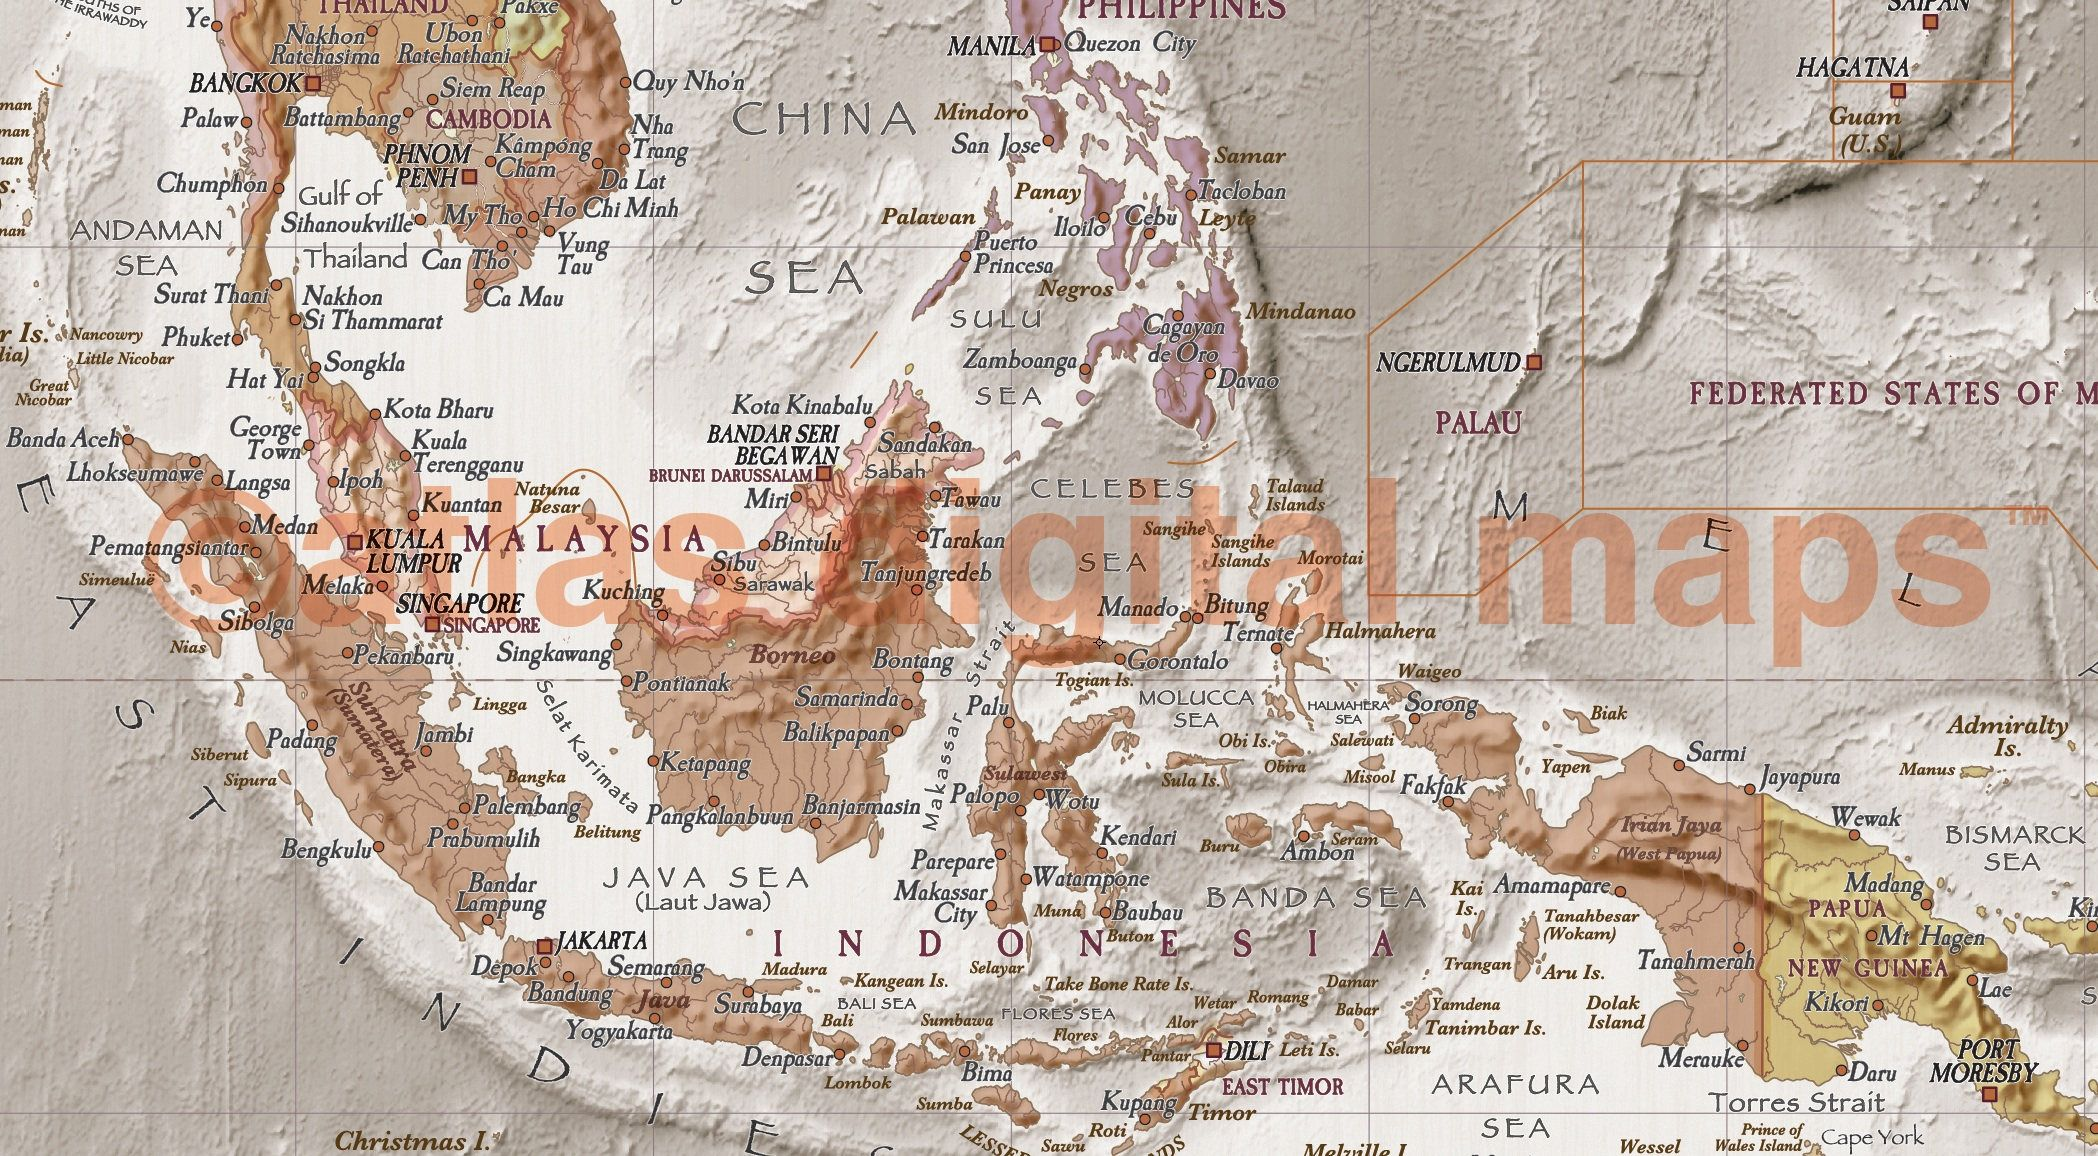 Antique Vintage Style World Map Print Physical Political World - Antique looking world maps for sale